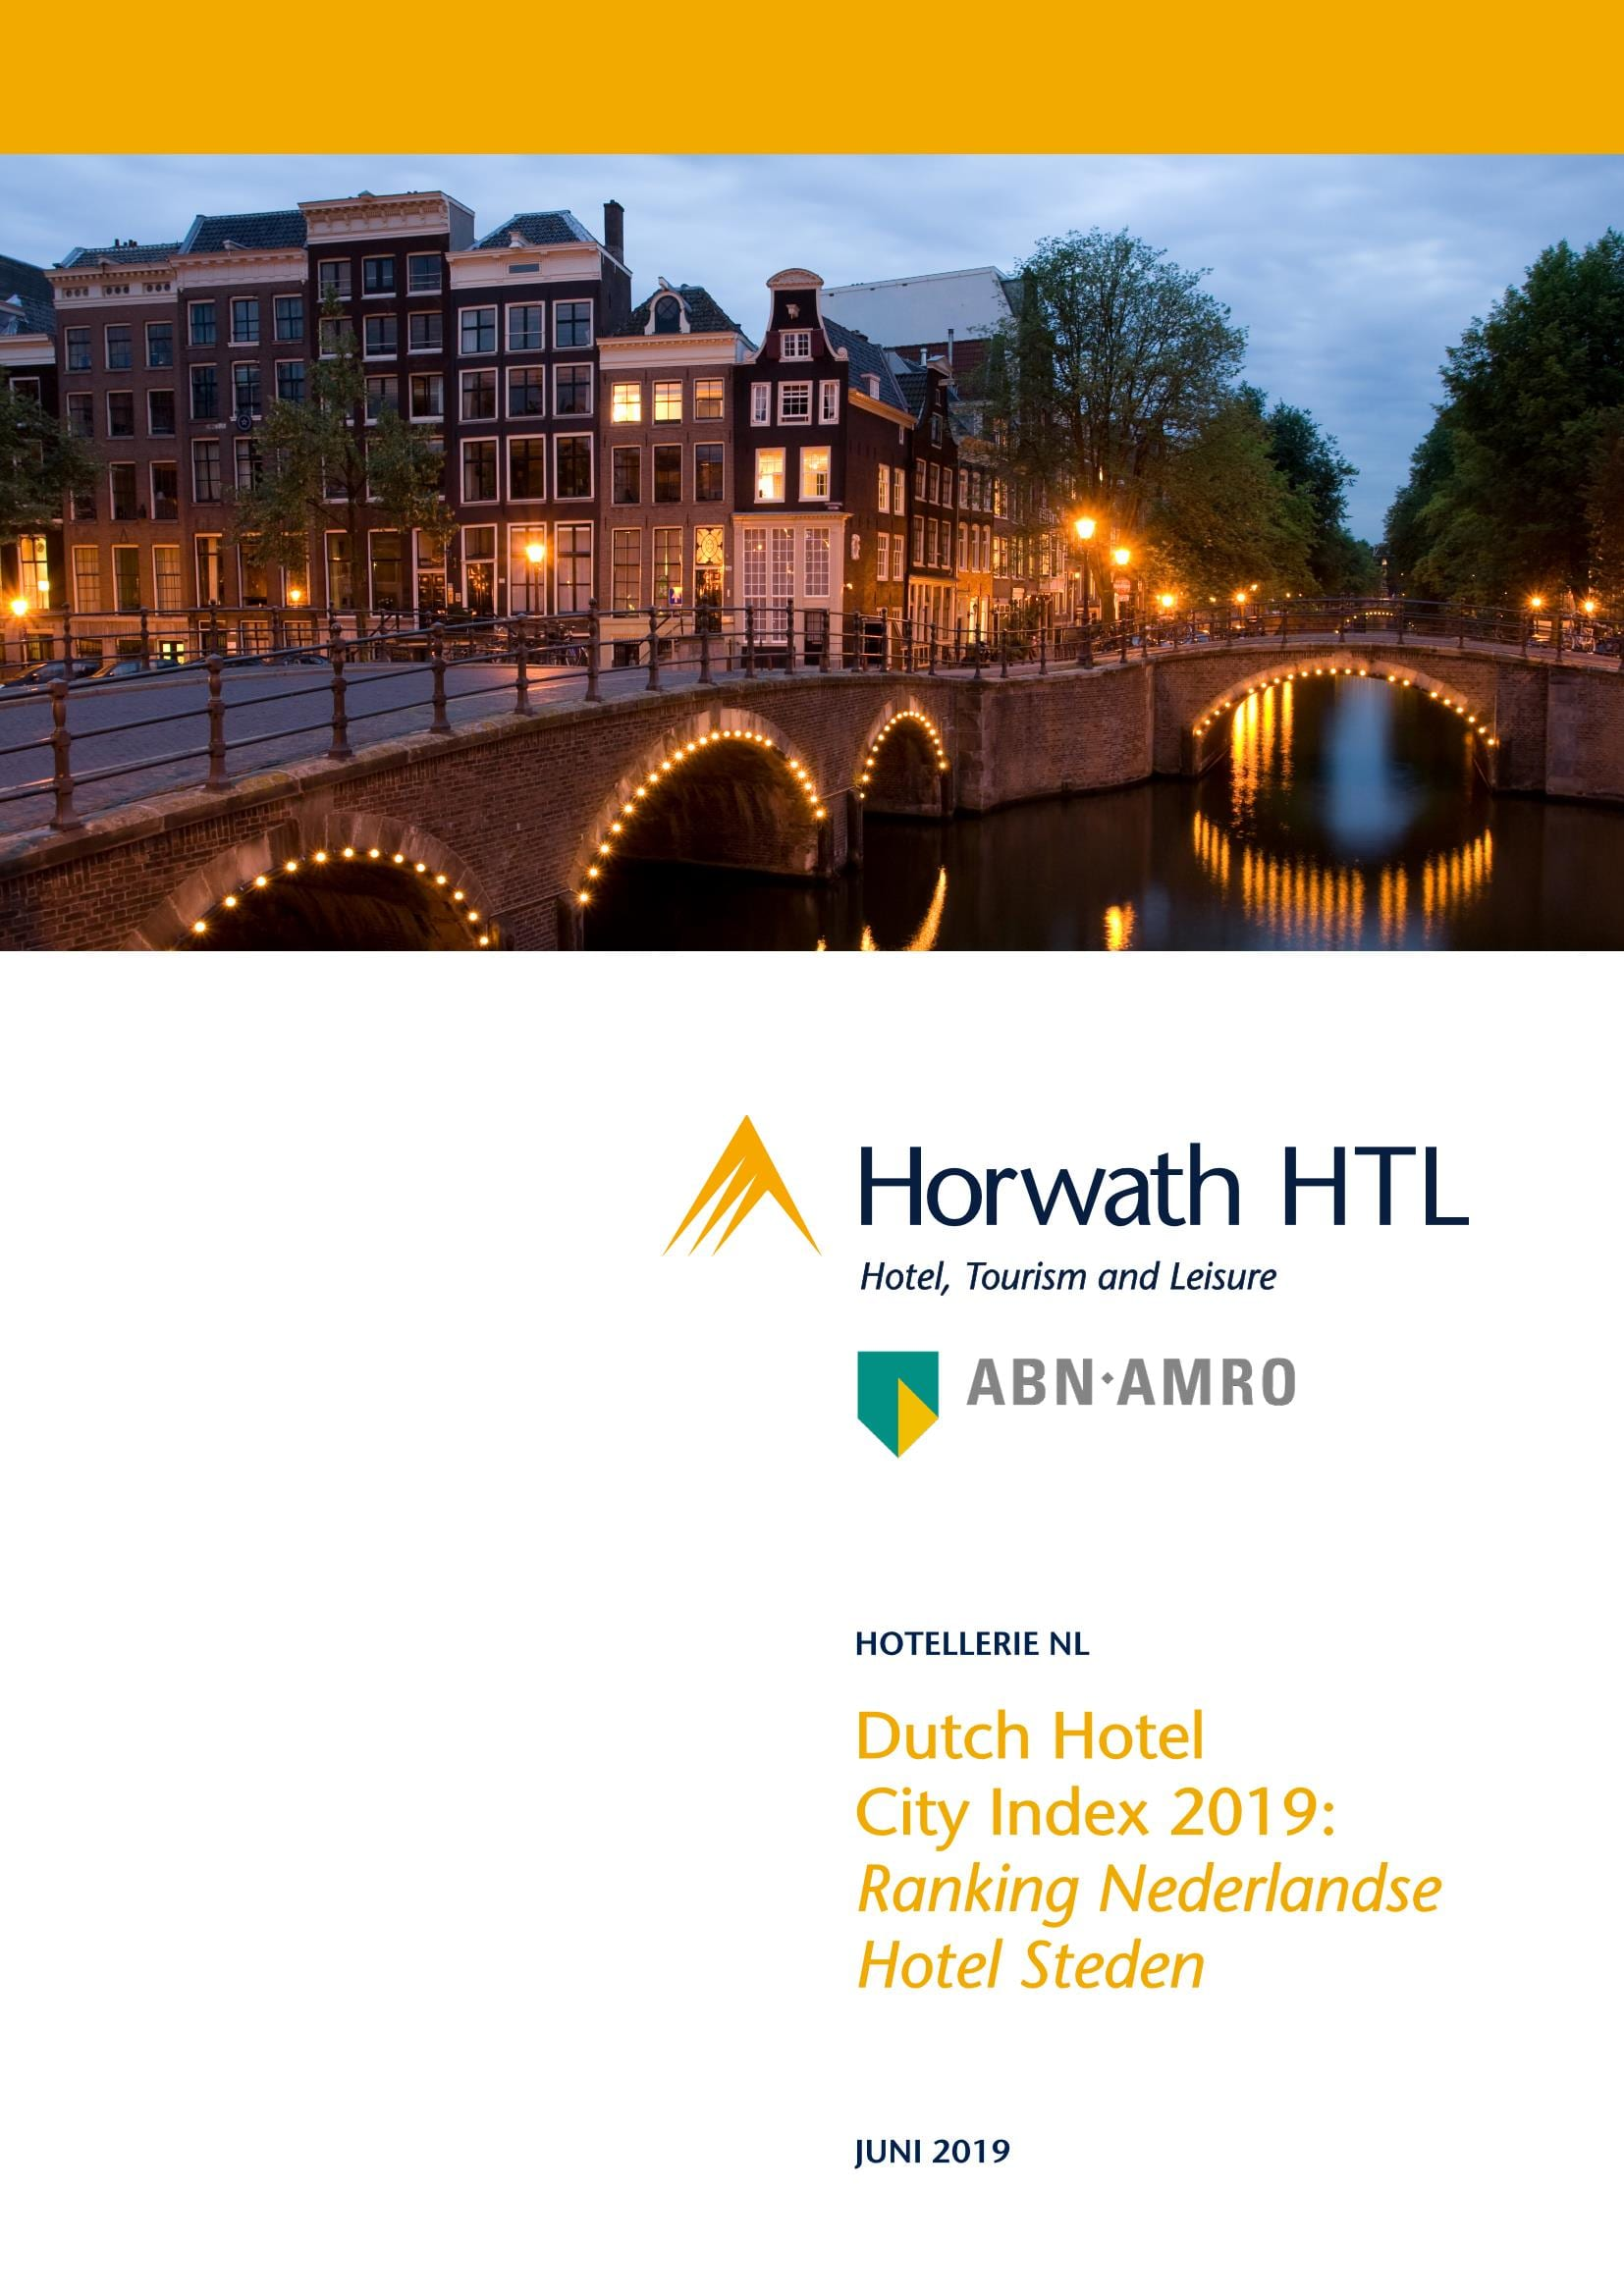 Rapport: Dutch Hotel City Index 2019